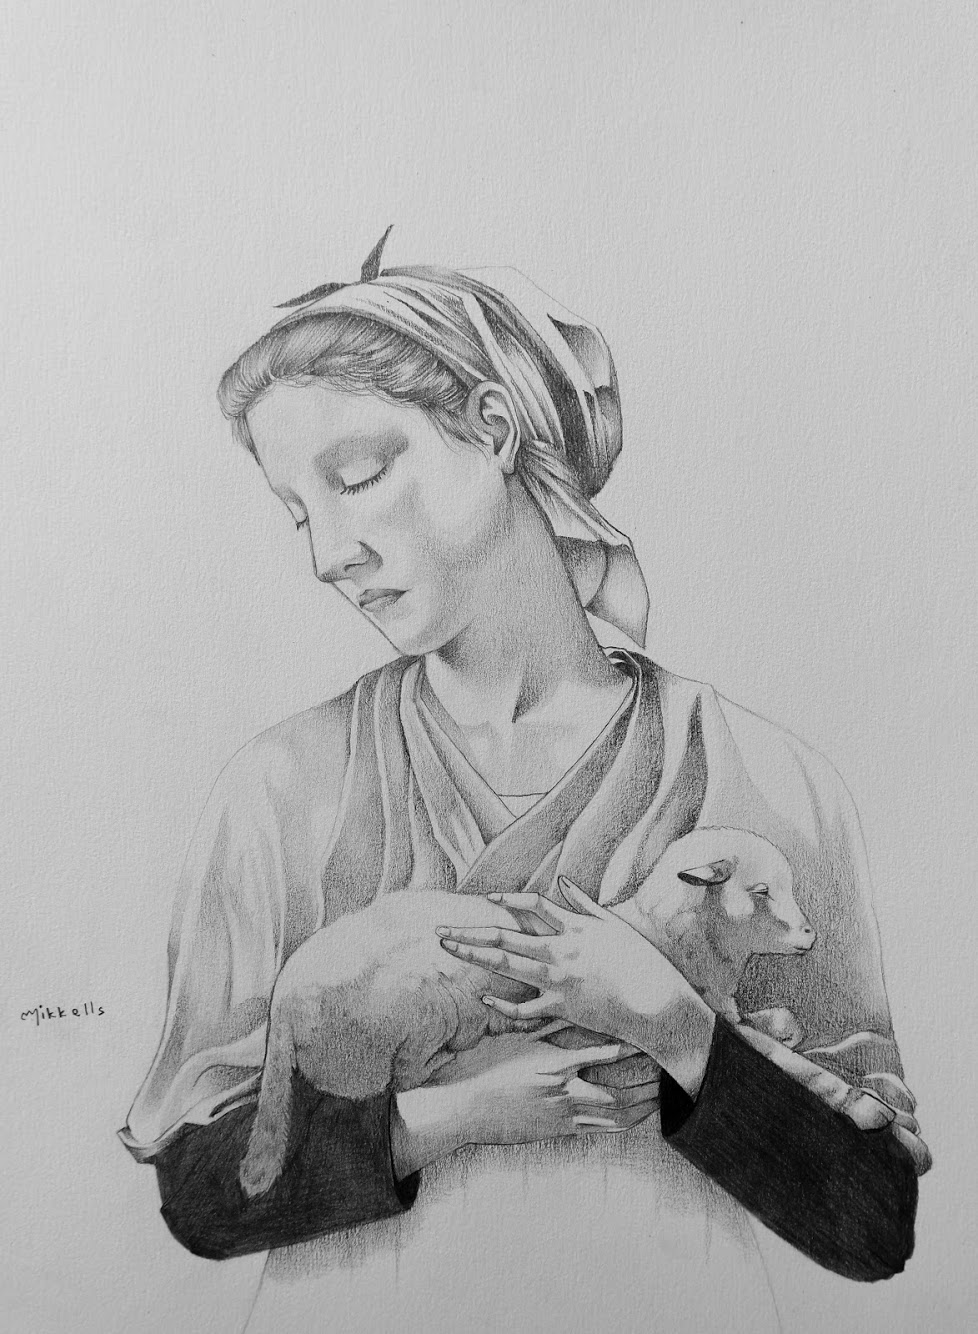 William Bouguereau Shepherd Pencil Artwork